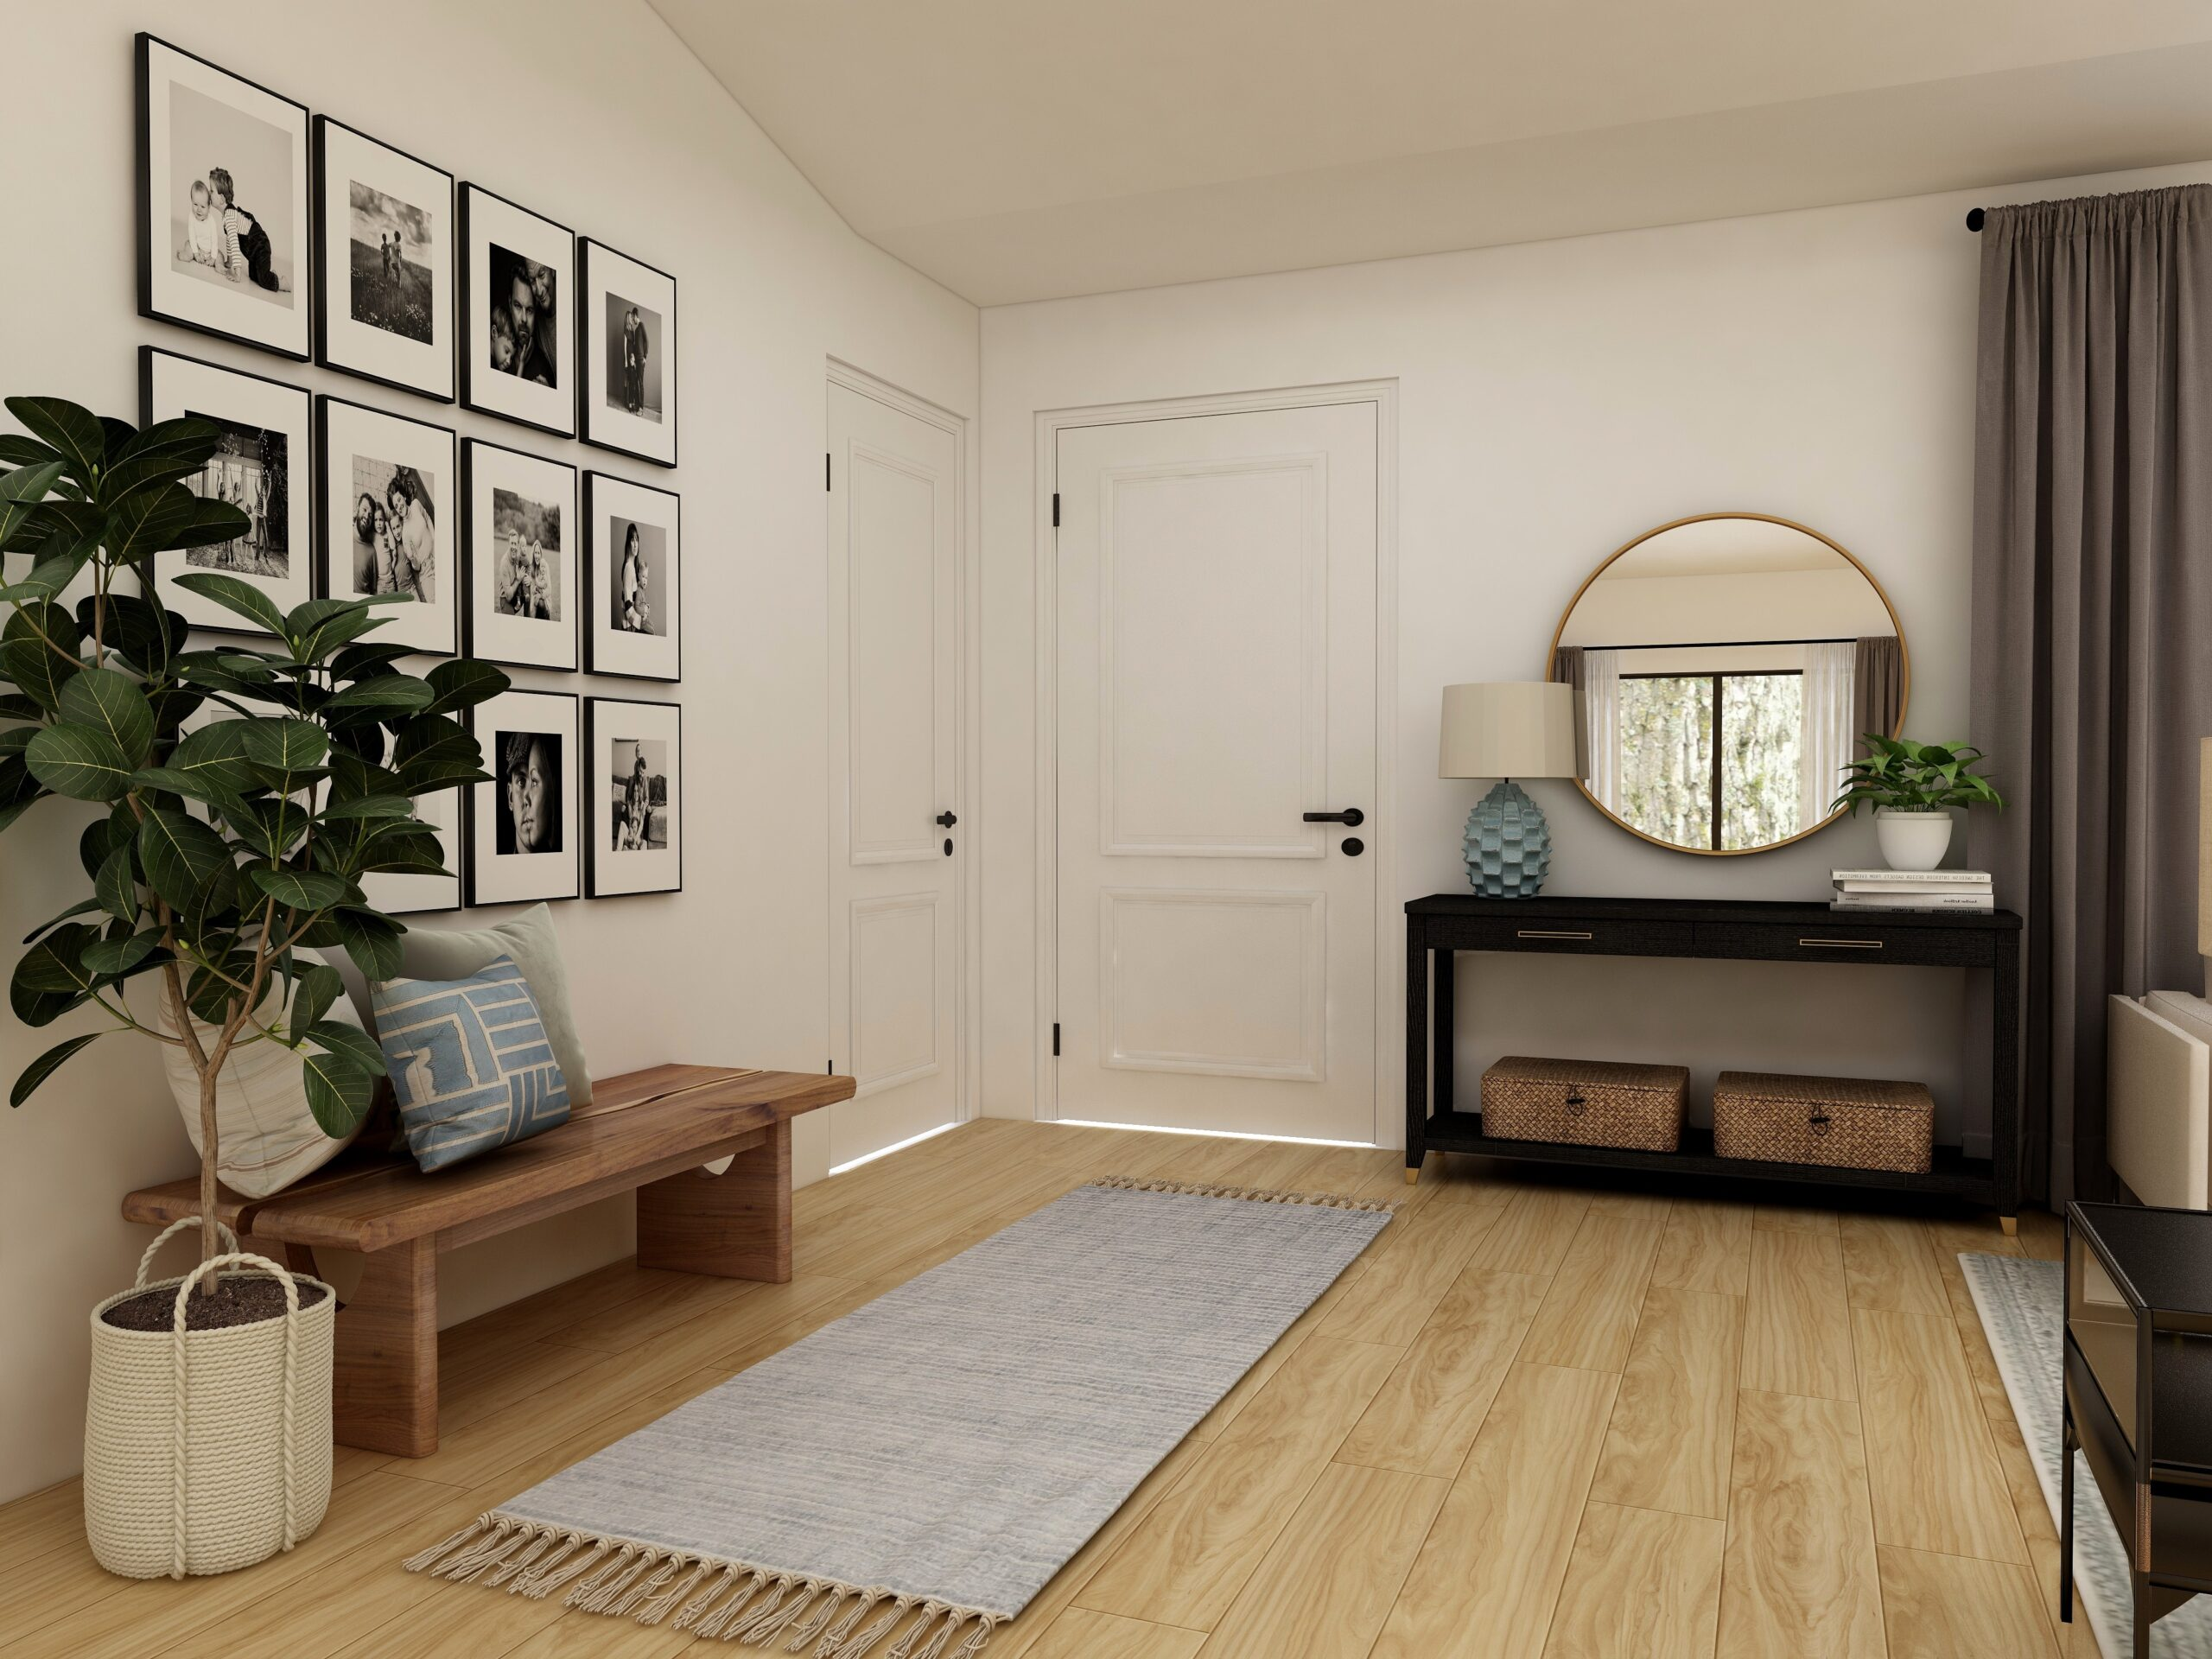 10 Ways to Make Your Entryway More Welcoming